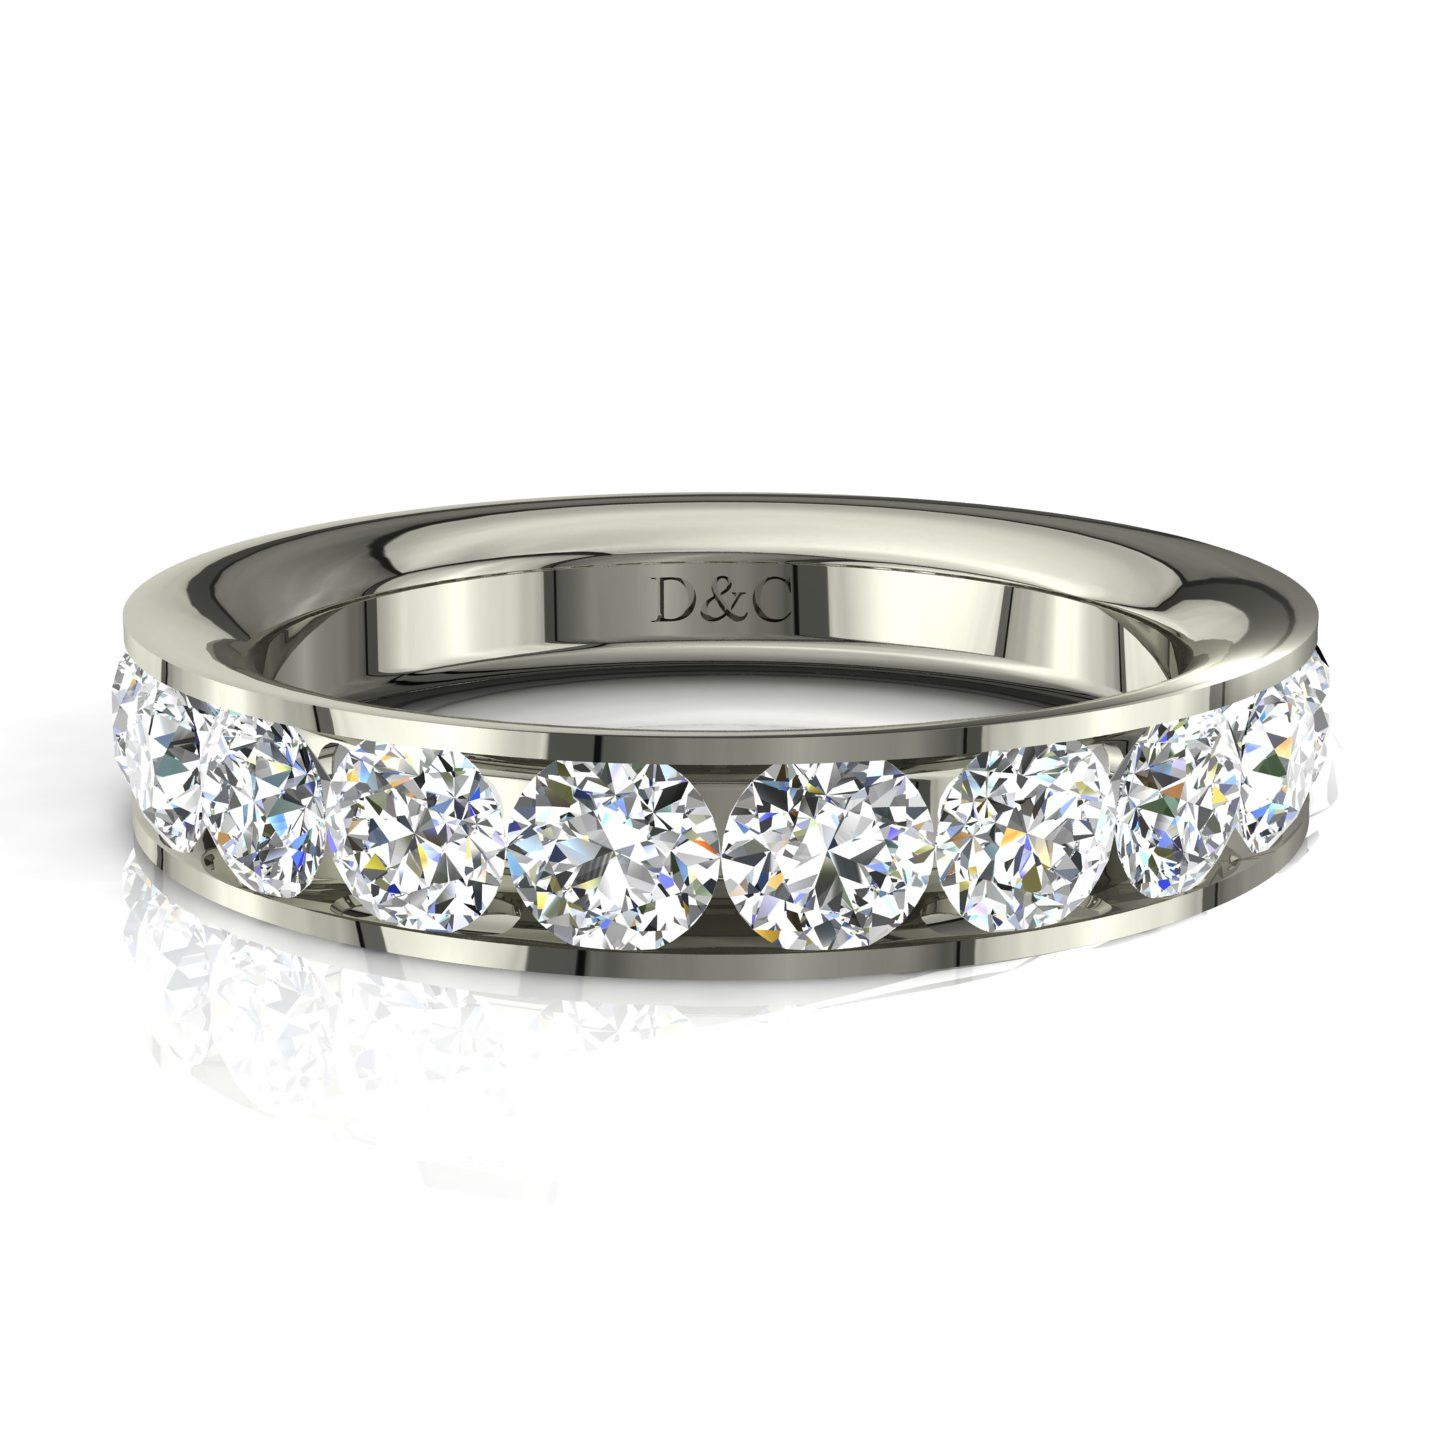 usine authentique cc902 acfde Alliance mariage diamants ronds rail 1.50 carat or blanc ...